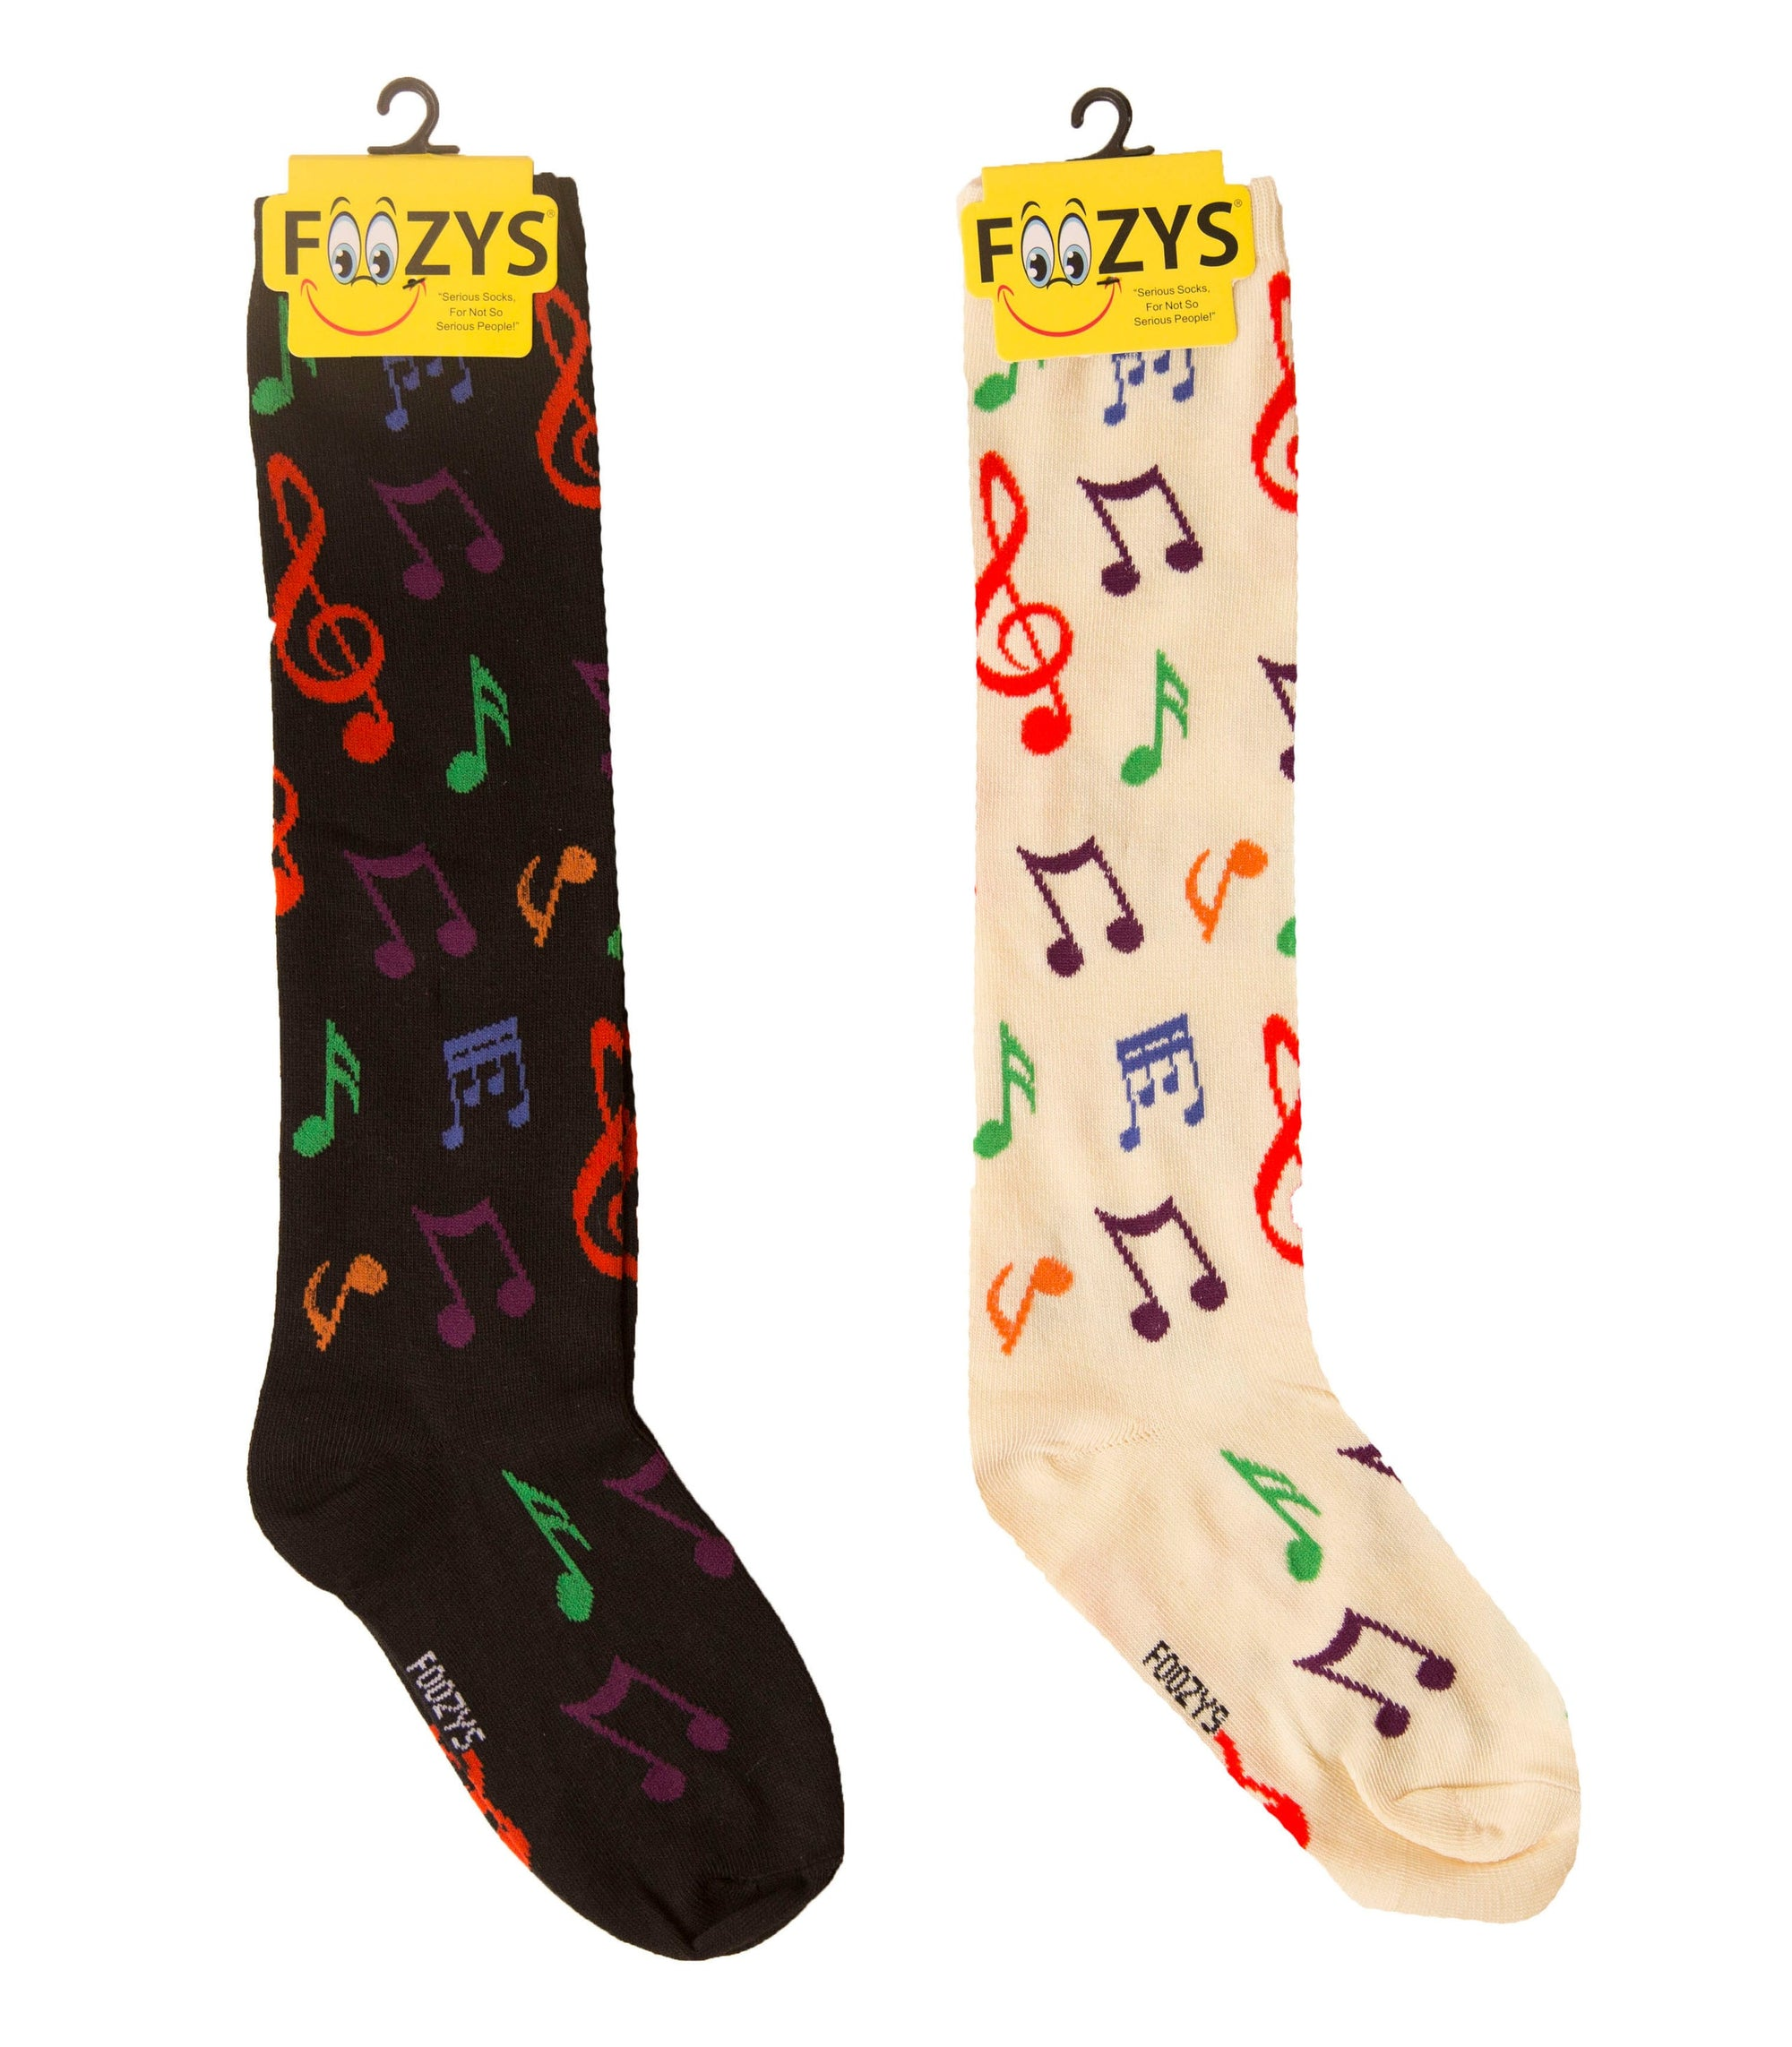 Foozys - FK-05: Music Notes